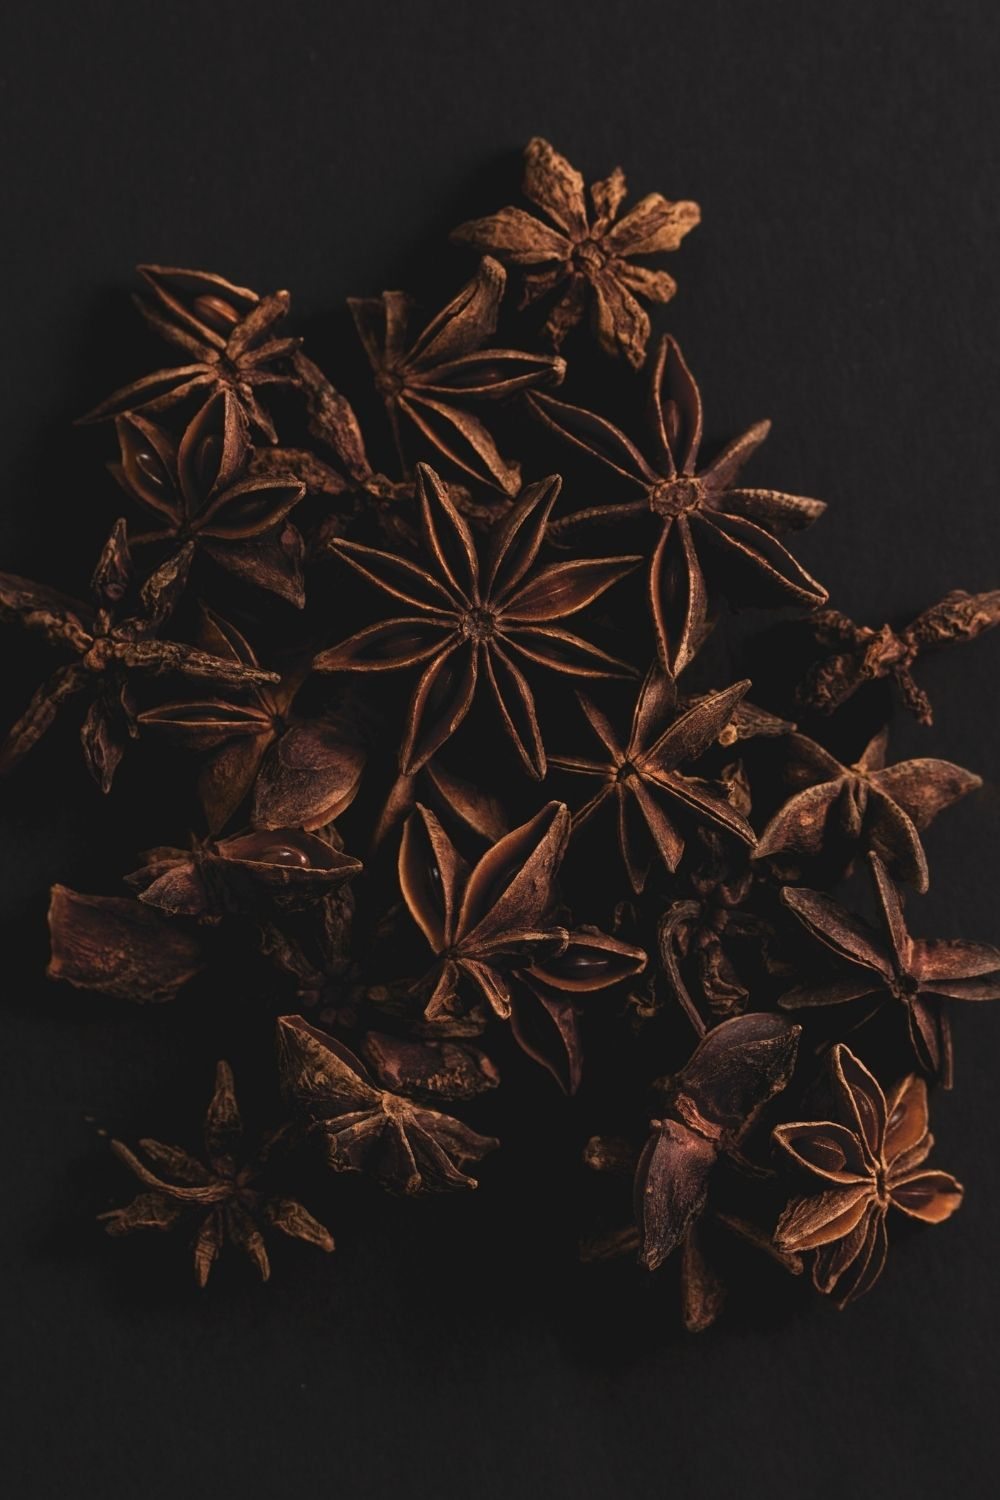 Many star anise pods on a dark background.